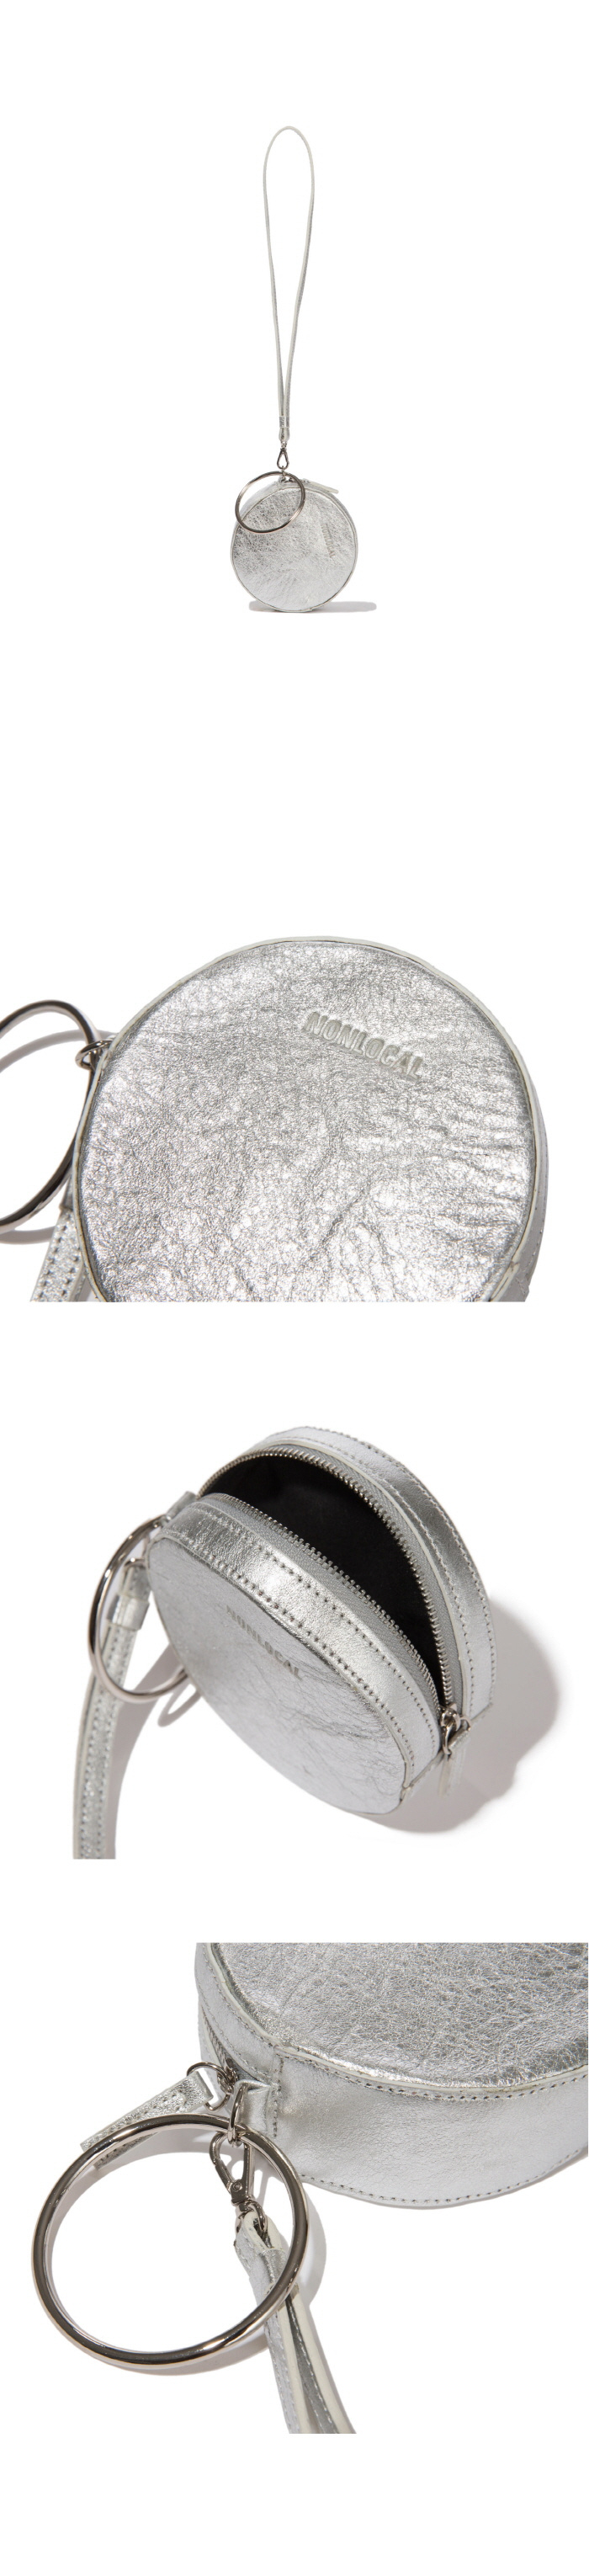 논로컬(NONLOCAL) Ring Ring Bag-Shilver